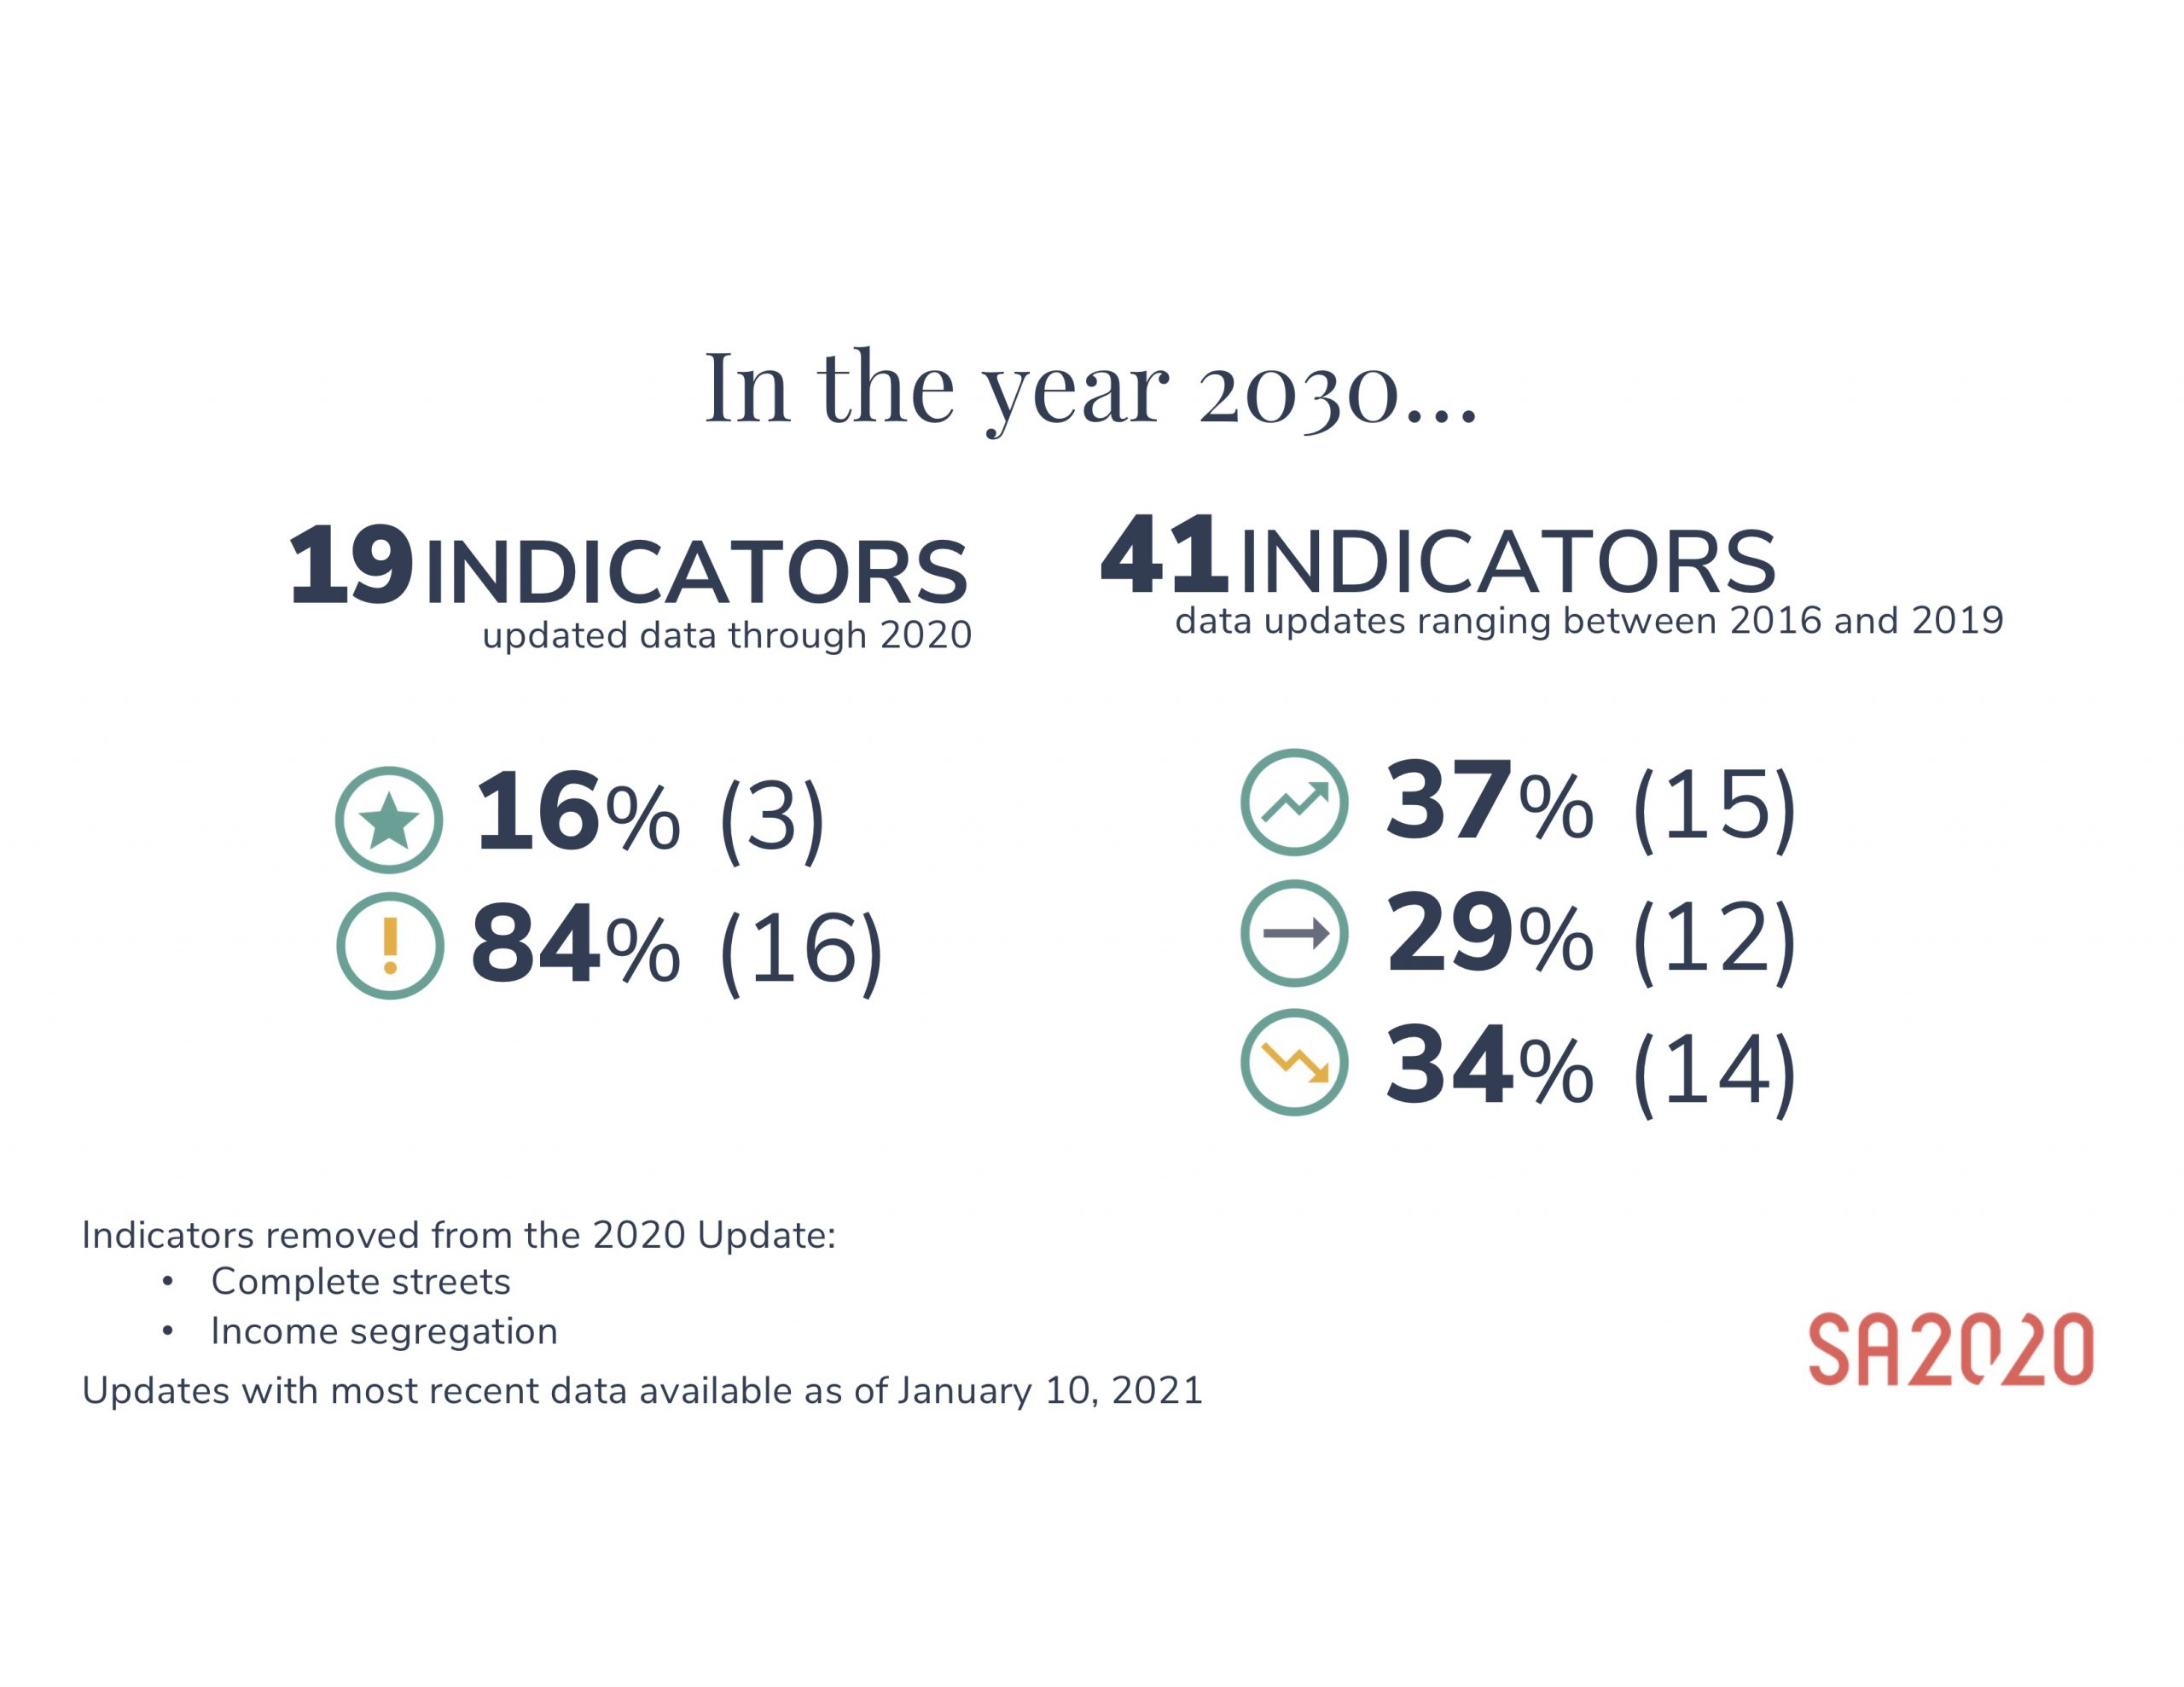 This graphic show the percentage of indicators, or metrics, that have reached its SA2020 goals, are on track to, or have not been reached.